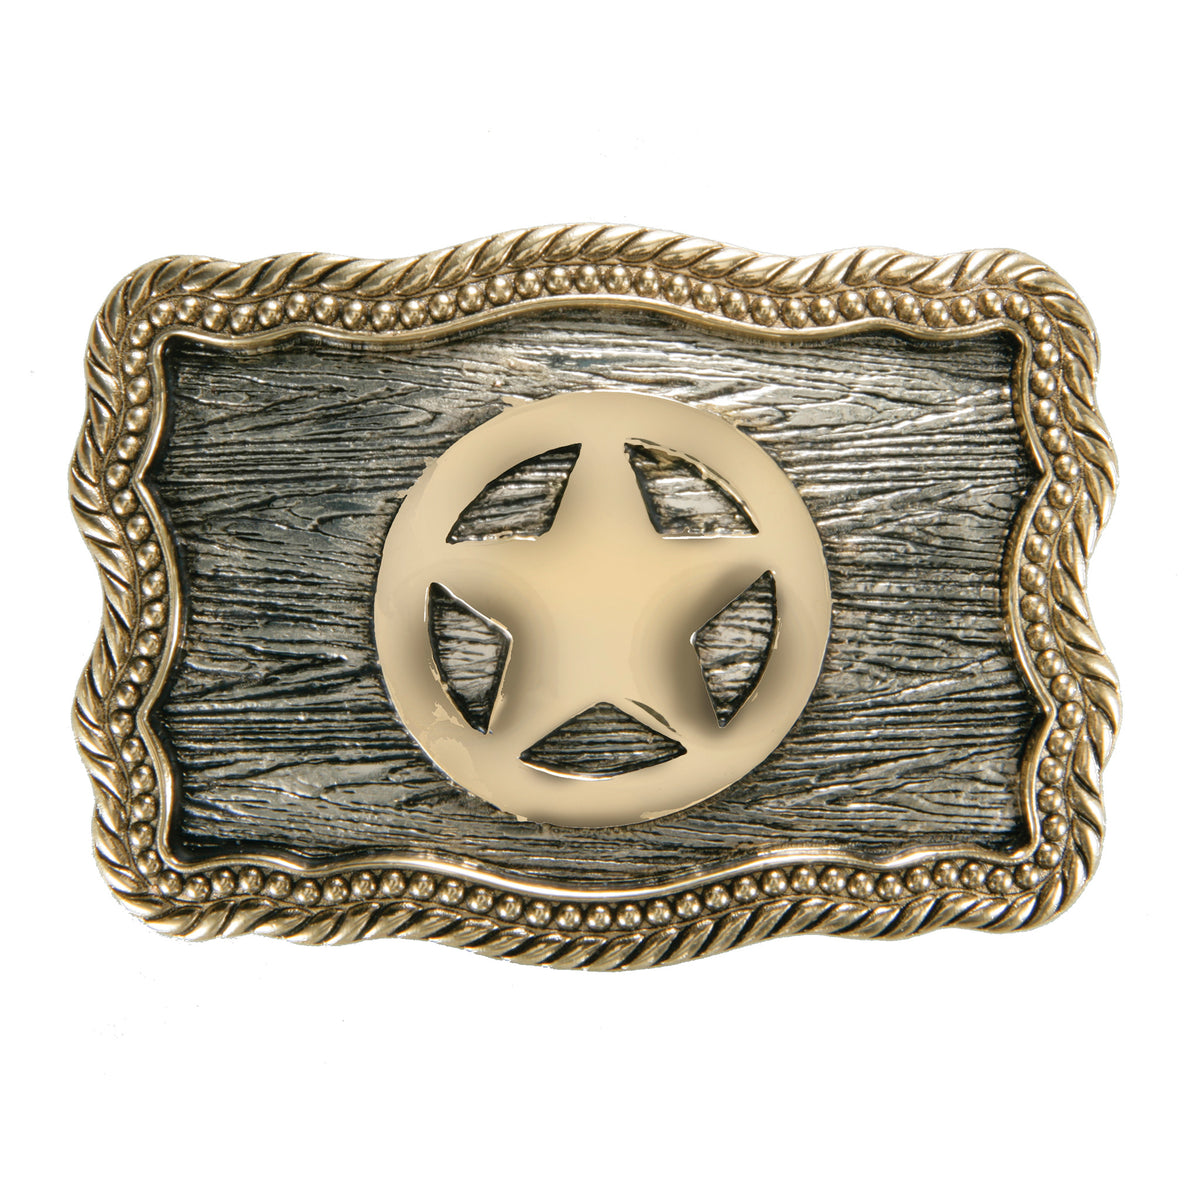 Texas Sheriffs Star Iconic Classic Buckle